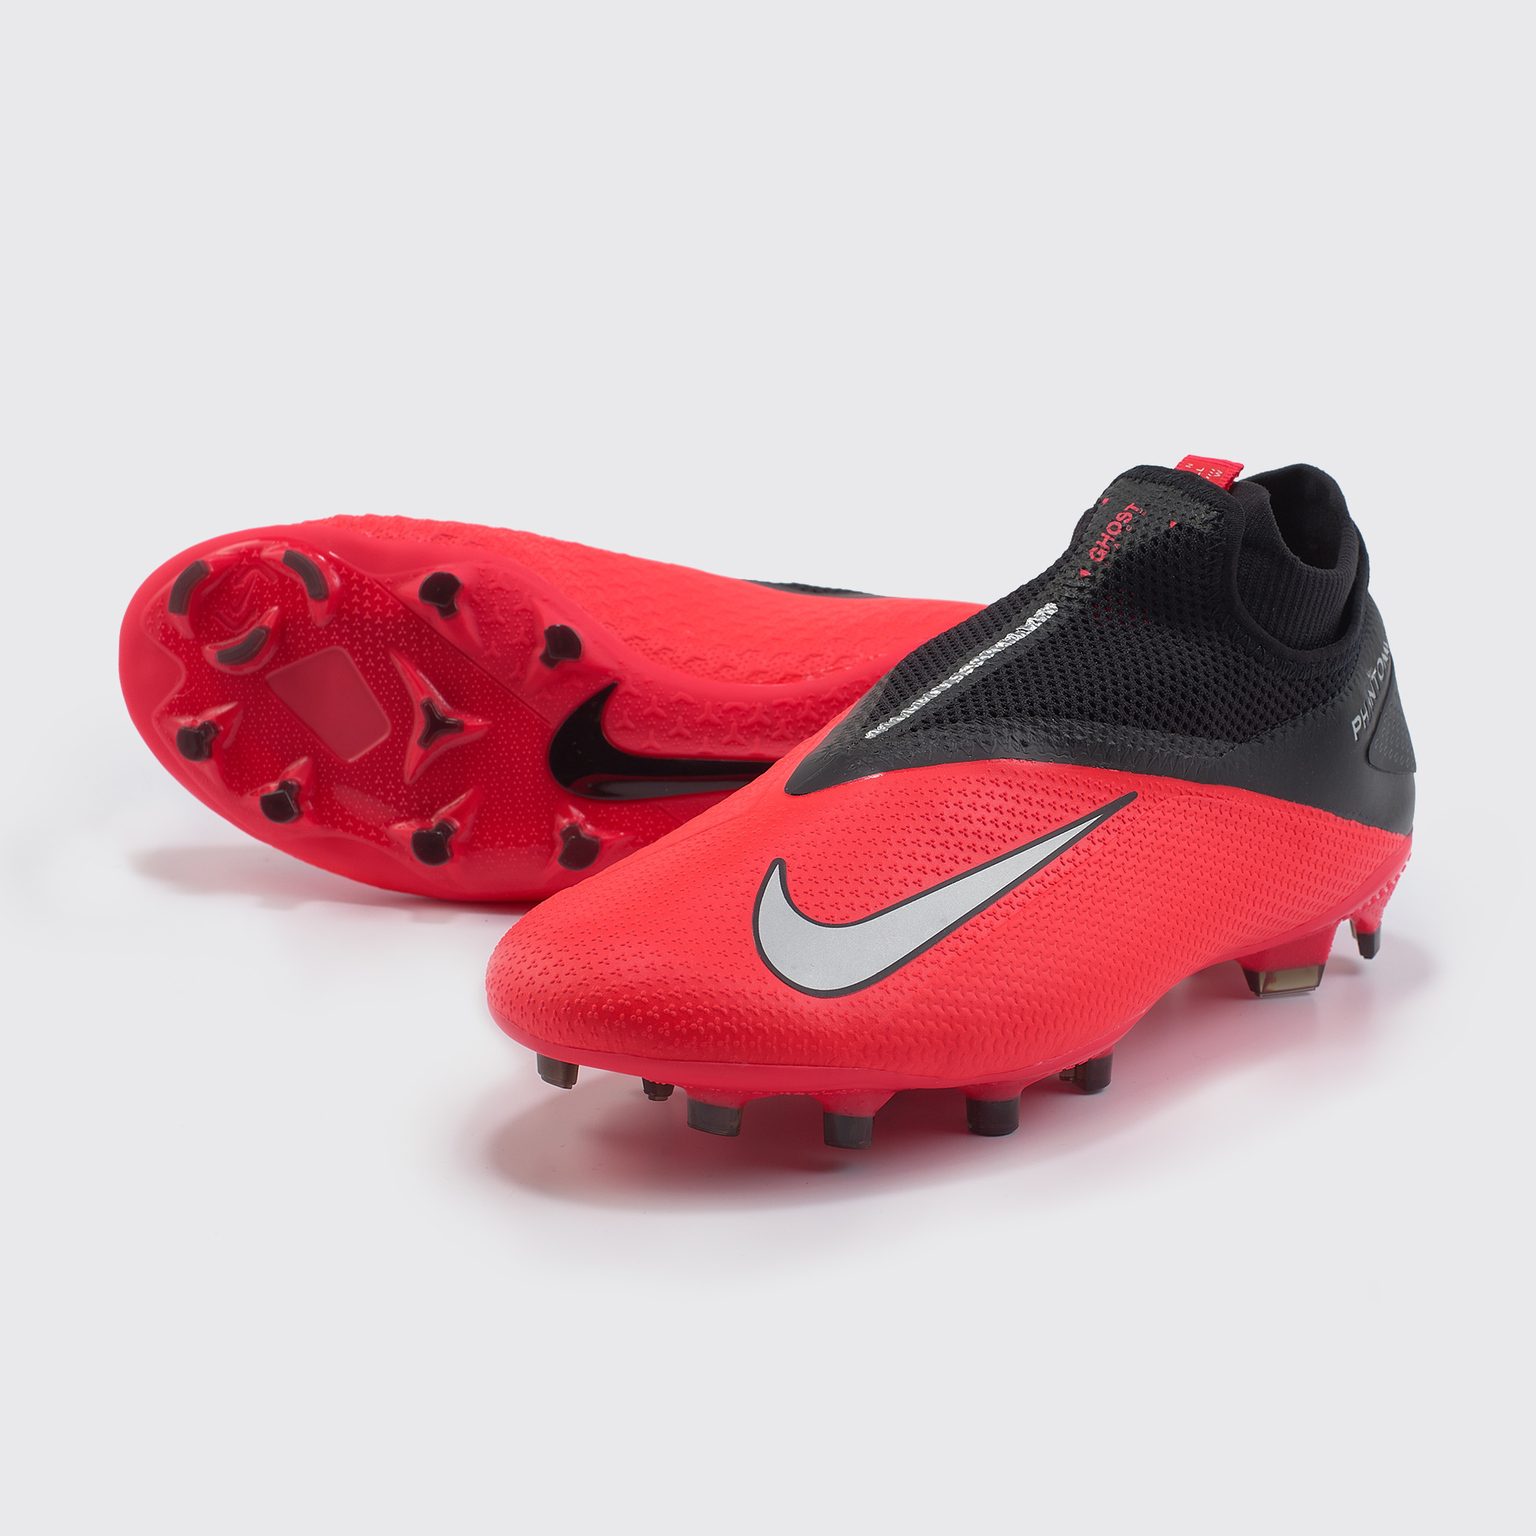 Бутсы Nike Phantom Vision 2 Pro DF FG CD4162-606 бутсы nike phantom vision 2 pro df fg cd4162 606